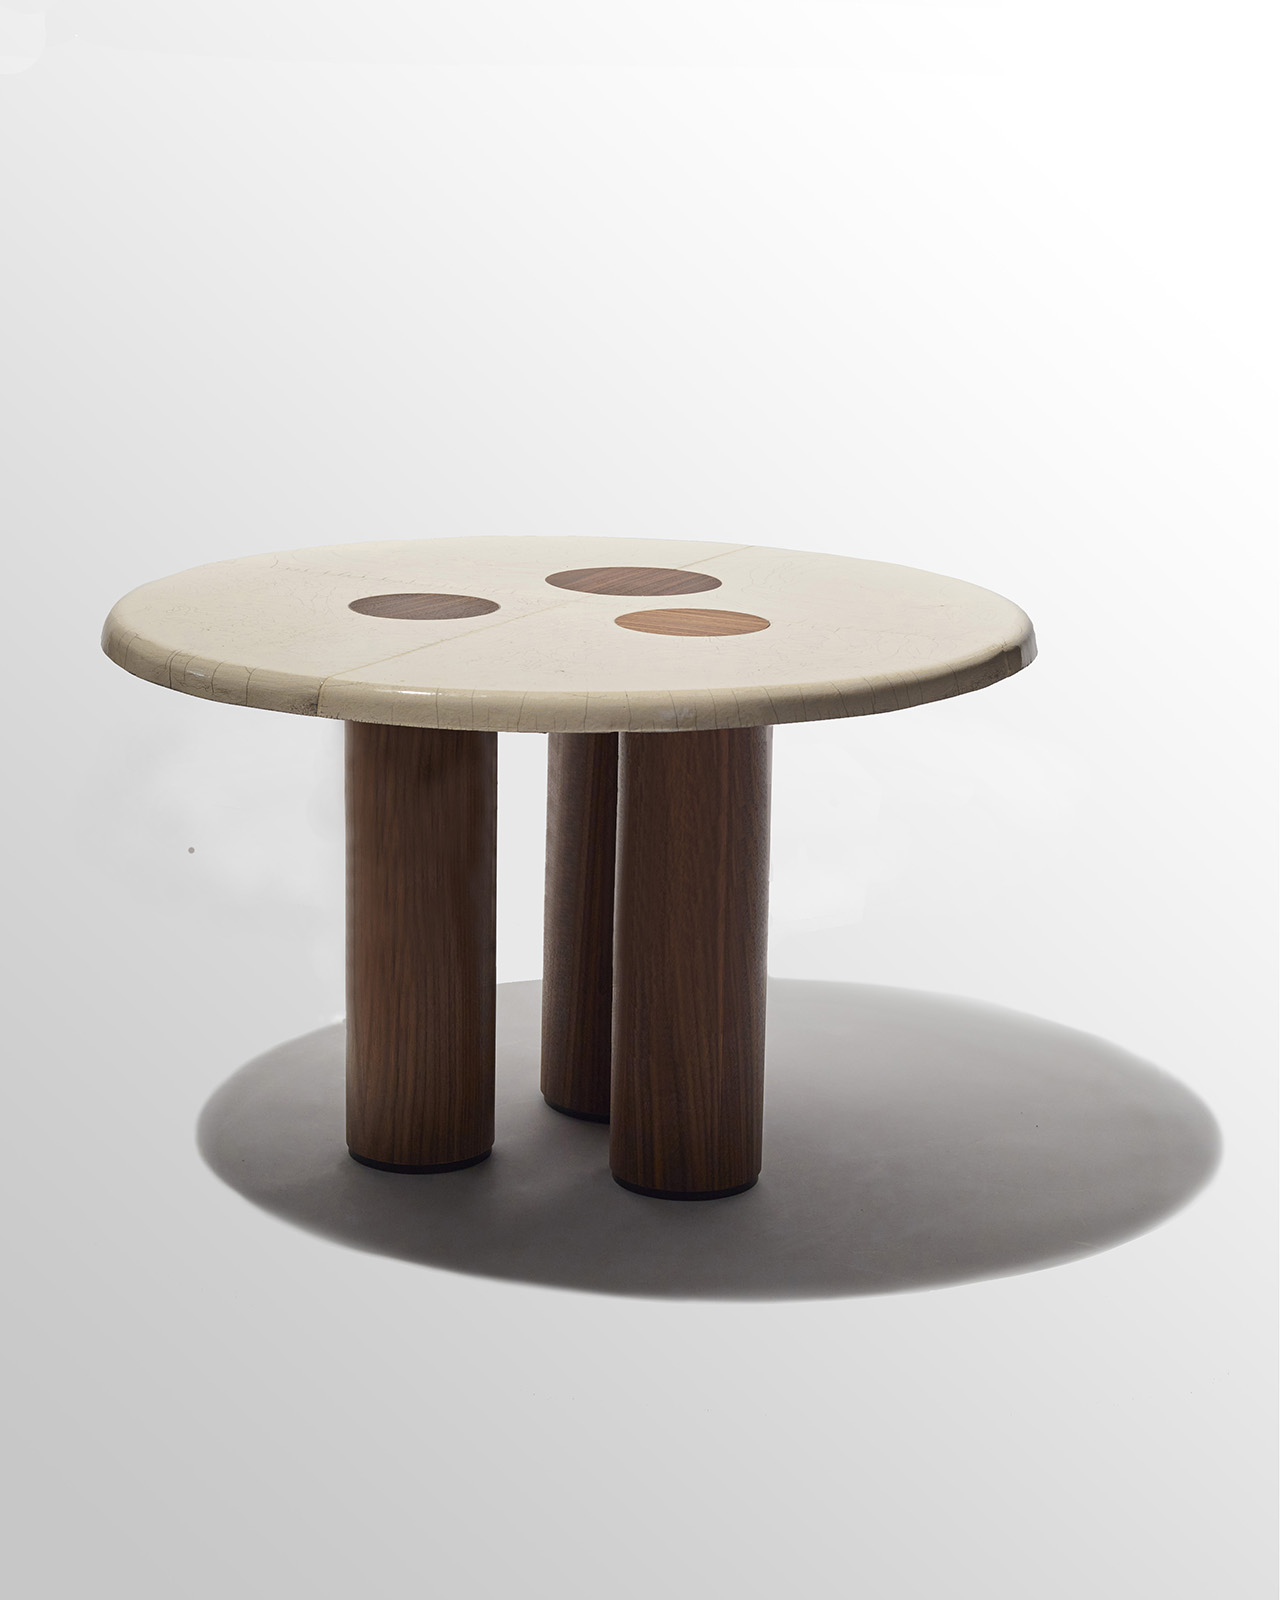 wooden table with cylindrical legs